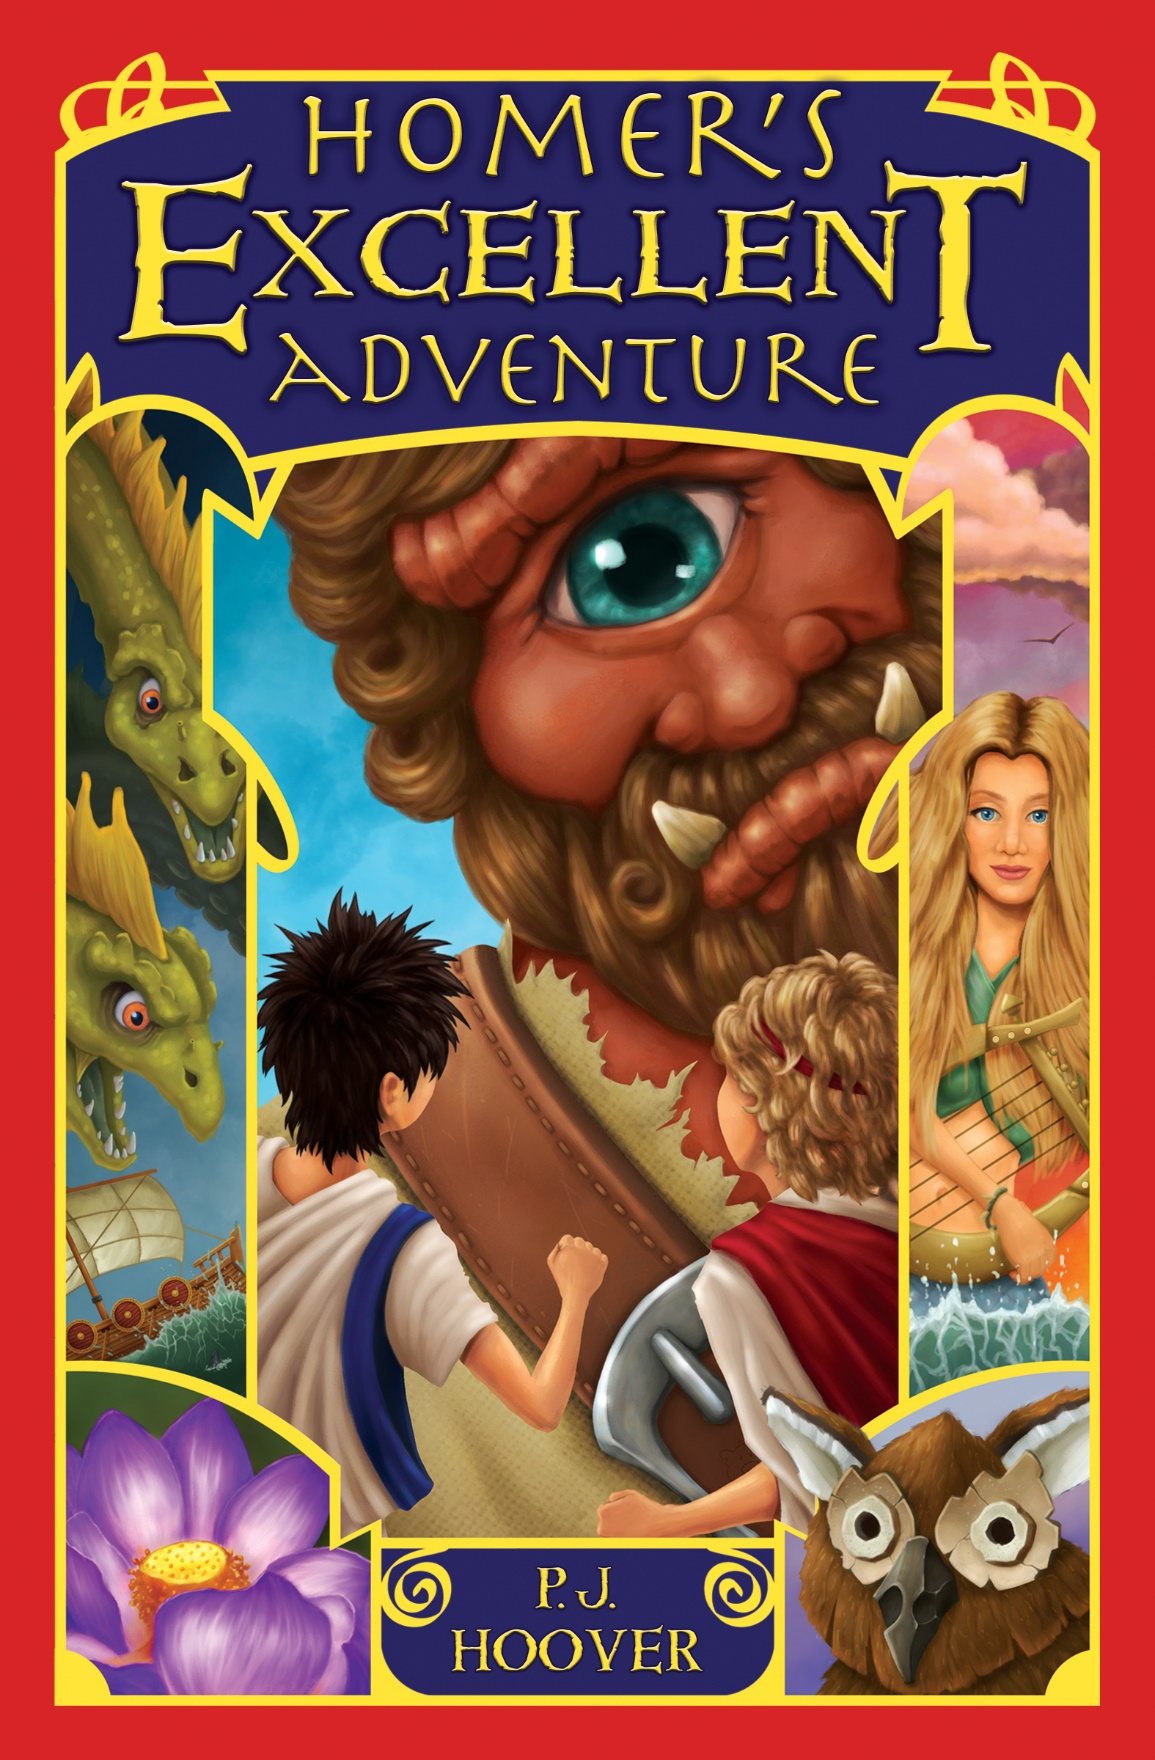 Guest Post: Author P.J. Hoover on Adapting Mythology for Today's Young Readers